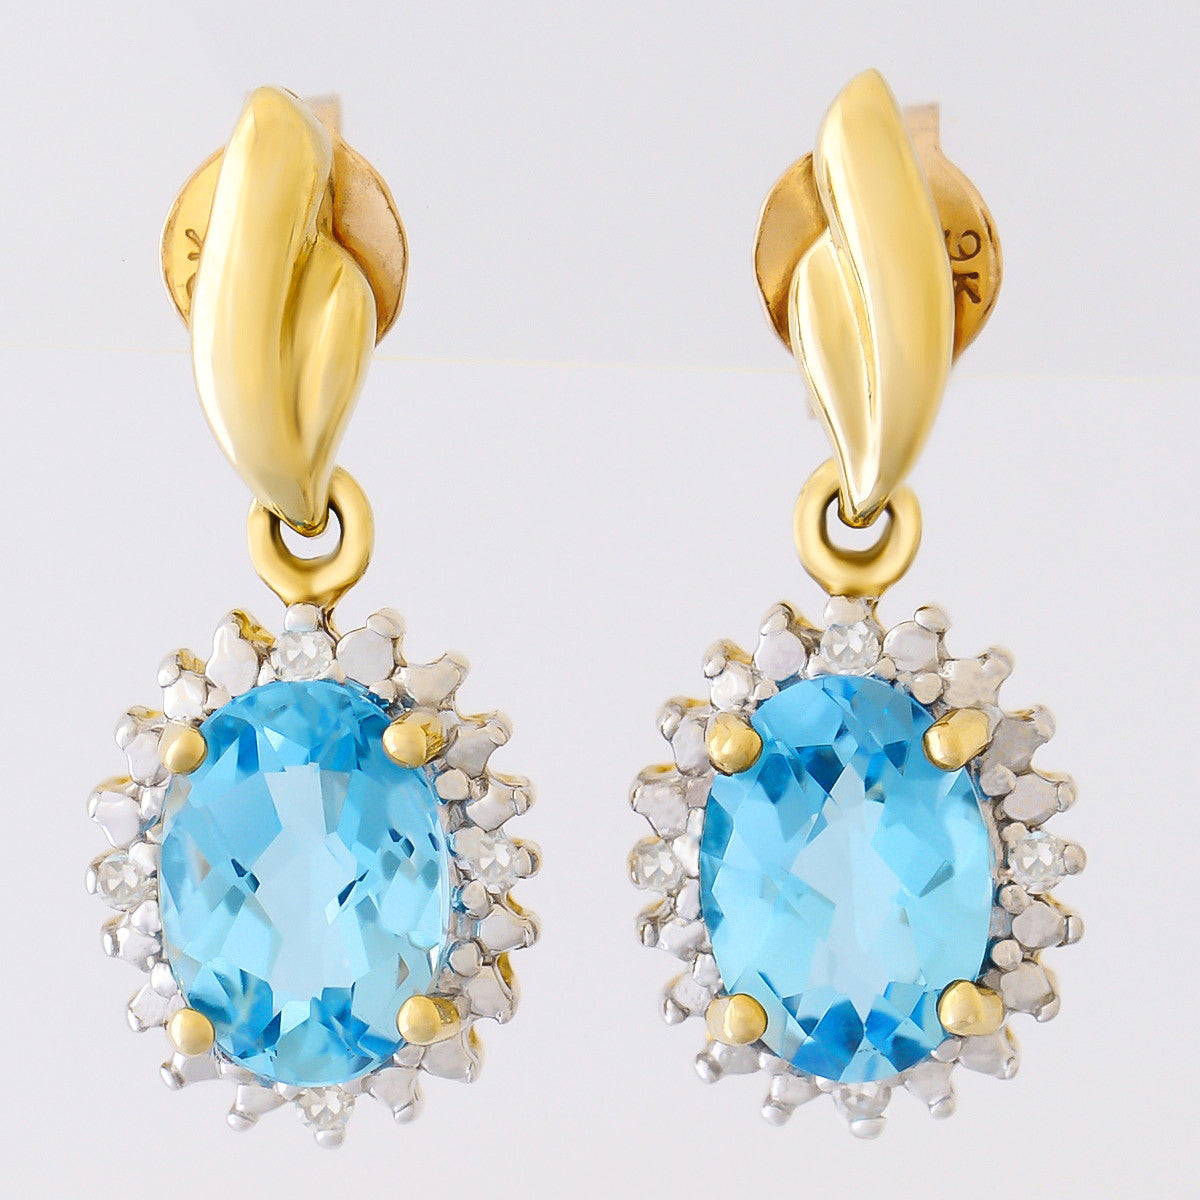 9k Solid Gold 170ct Swiss Blue Topaz Earrings With Eight Diamonds